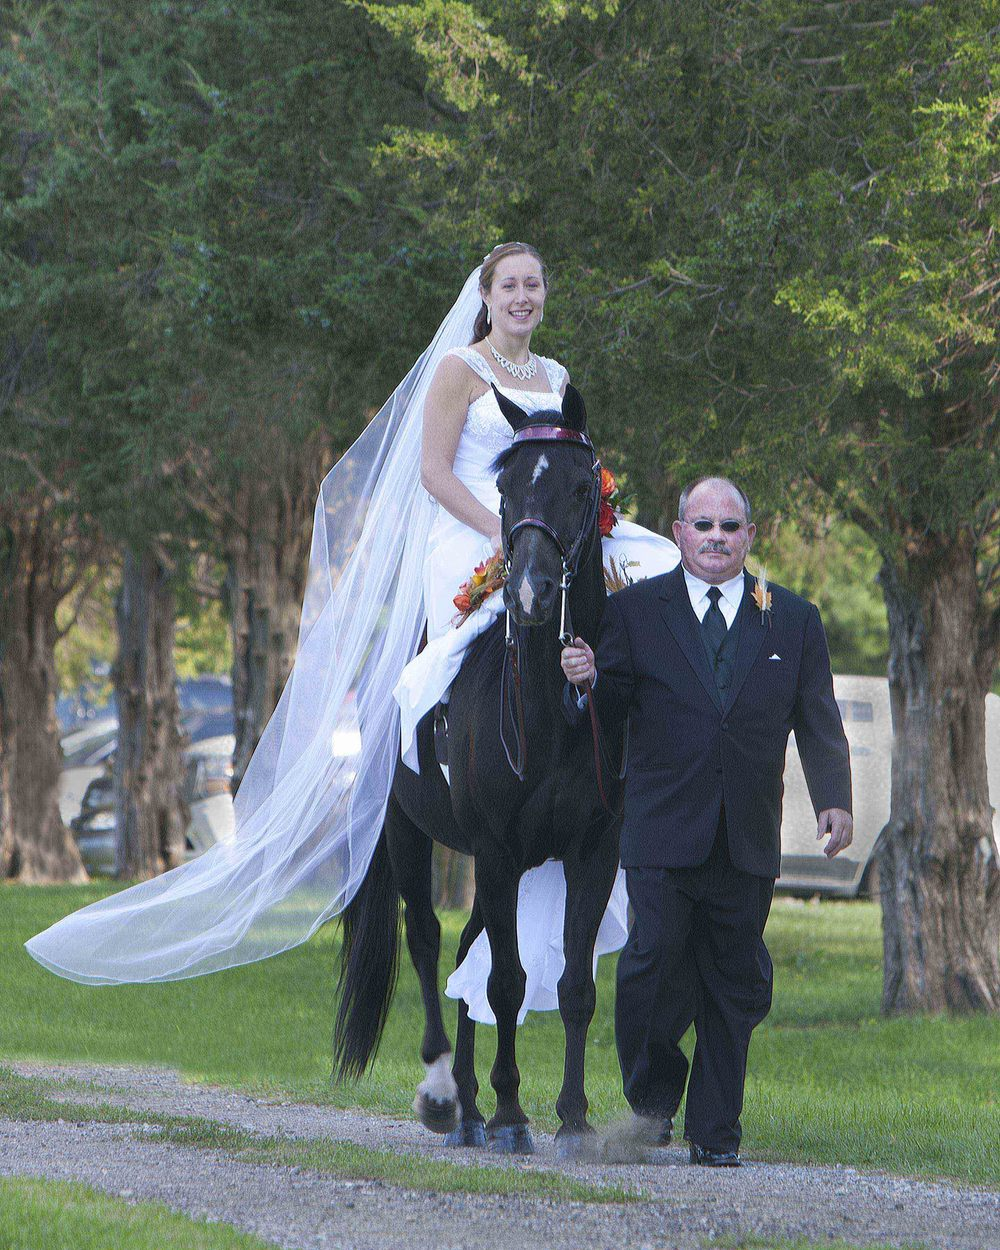 Wedding Bride On Horse.jpg